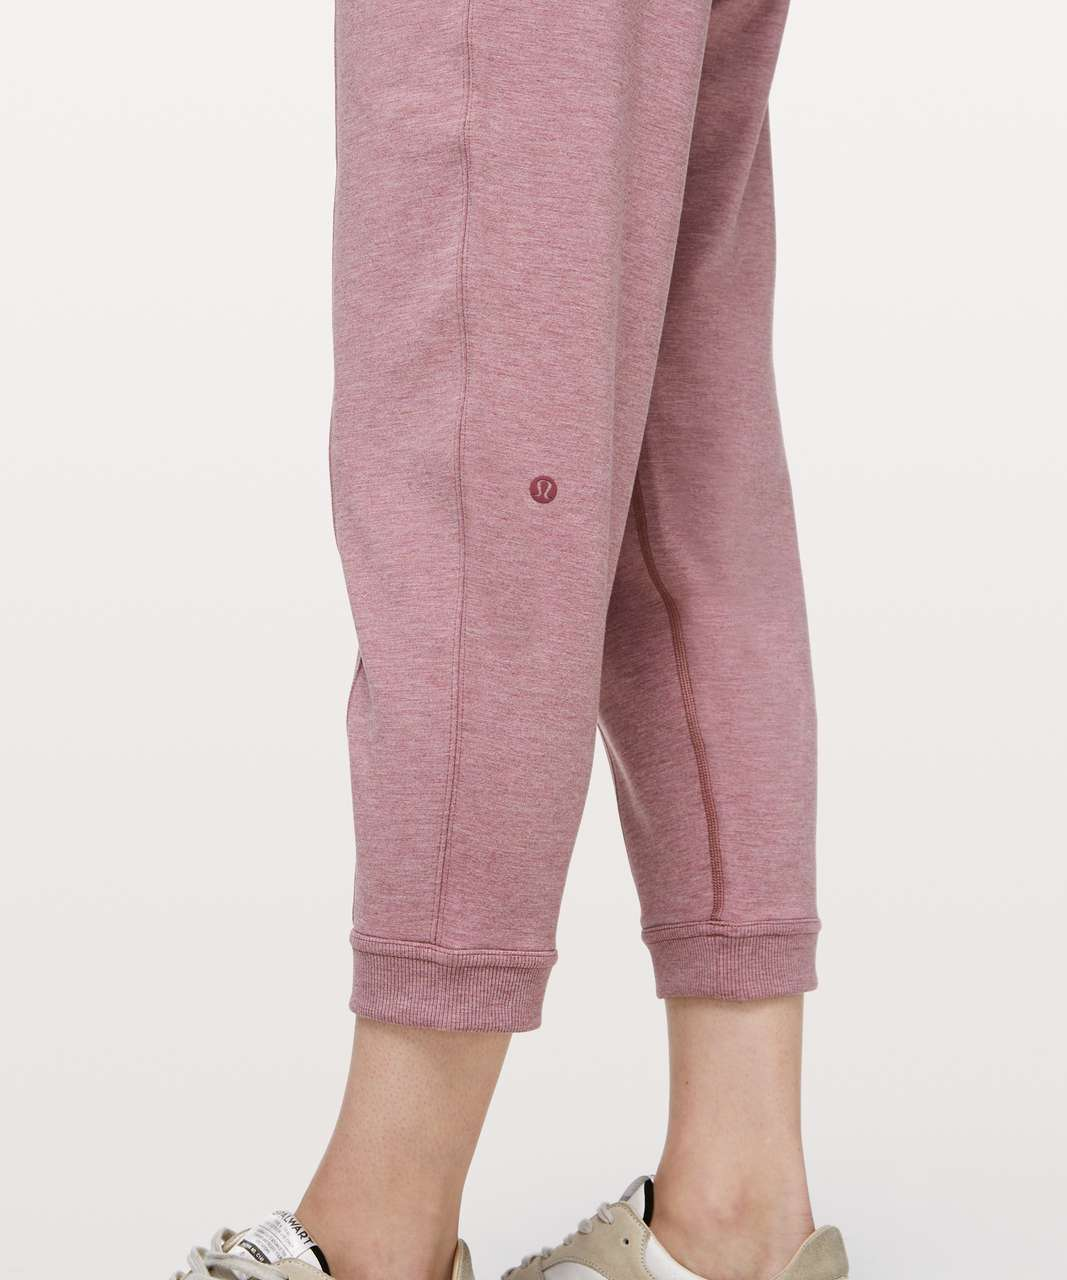 Lululemon At My Leisure Jogger - Heathered Mod Misty Merlot